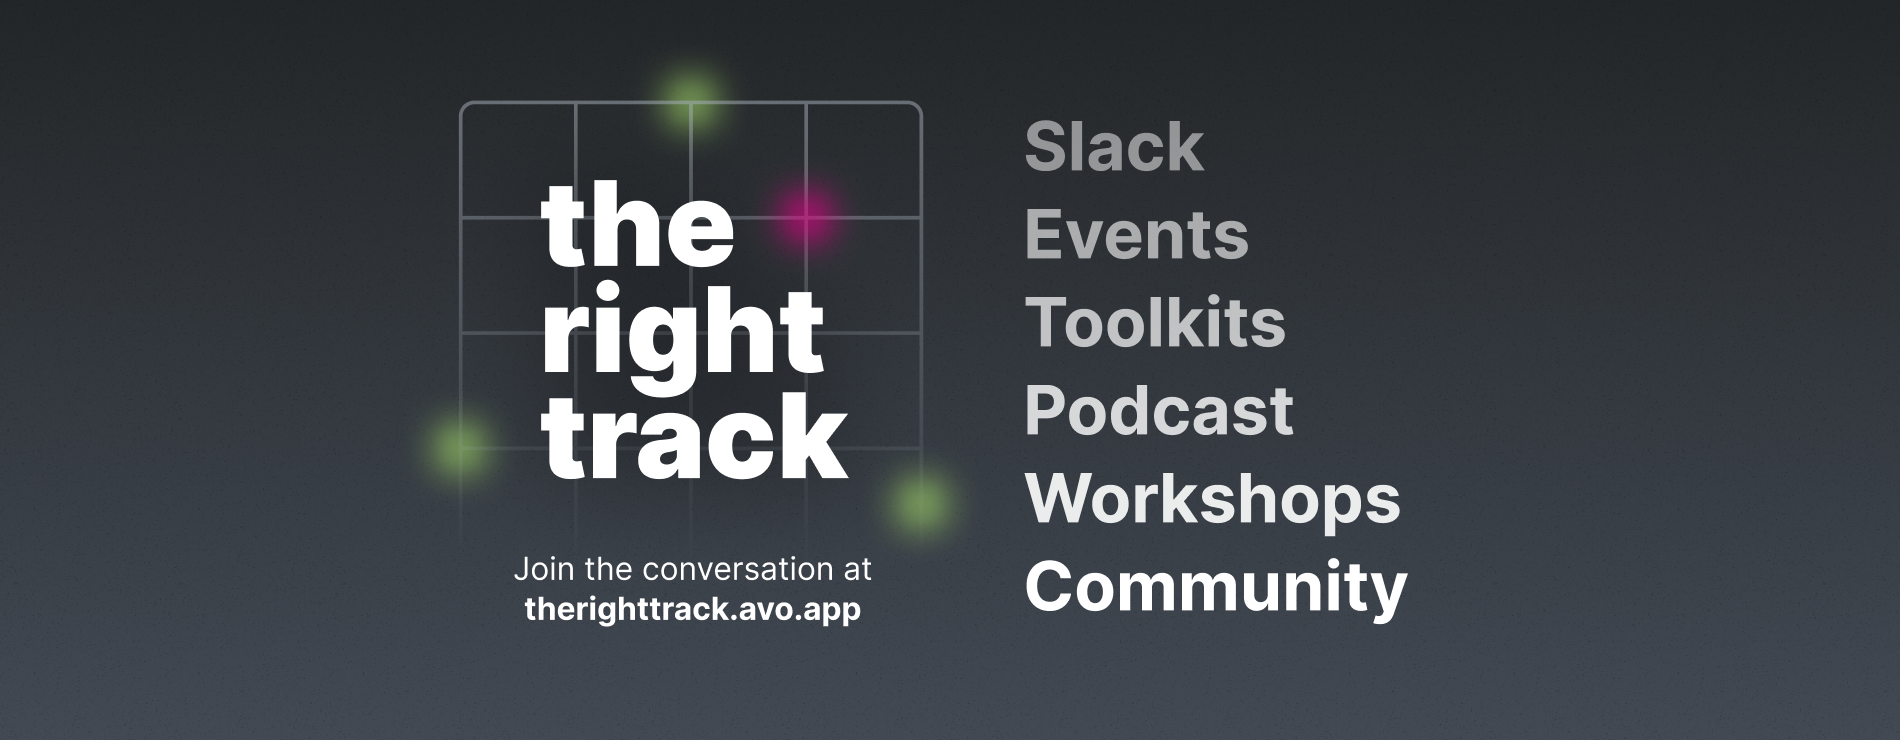 Introducing The Right Track podcast and community